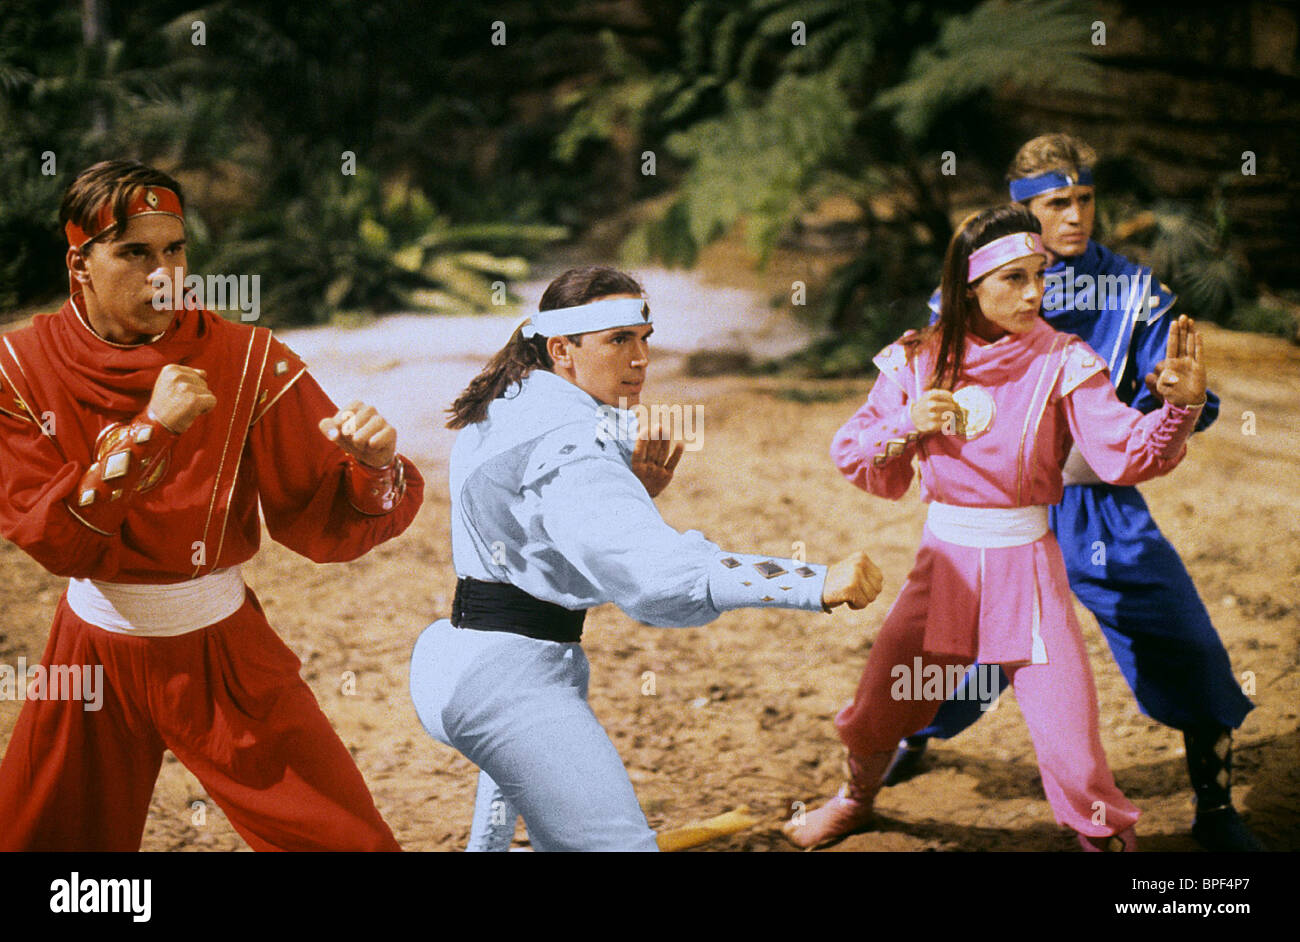 STEVE CARDENAS, JASON DAVID FRANK, AMY JO JOHNSON, DAVID YOST, MIGHTY MORPHIN POWER RANGERS: THE MOVIE, 1995 - Stock Image